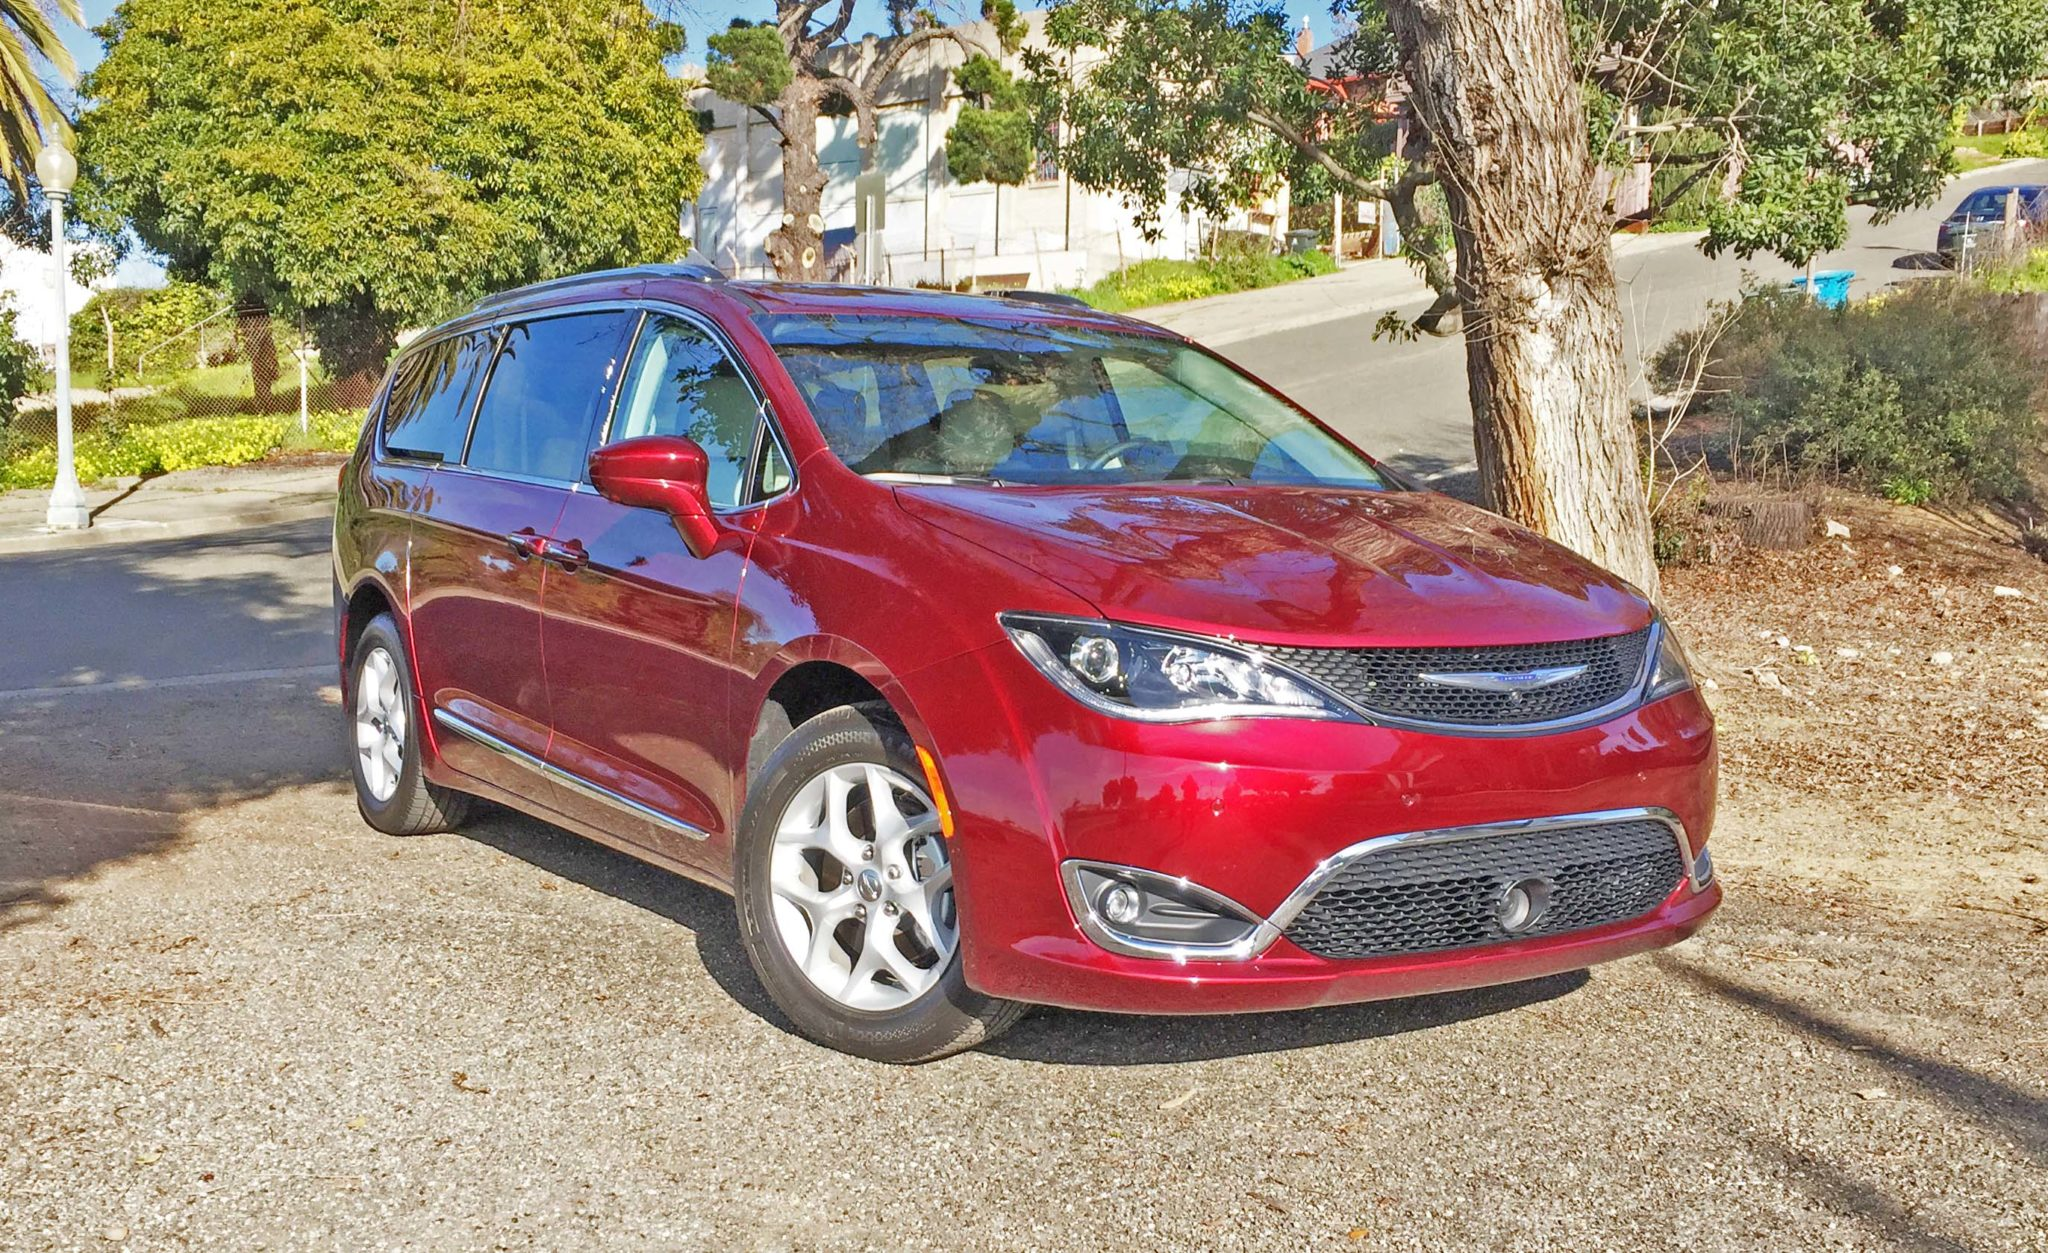 Chrysler Pacifica Trg L+ LSF